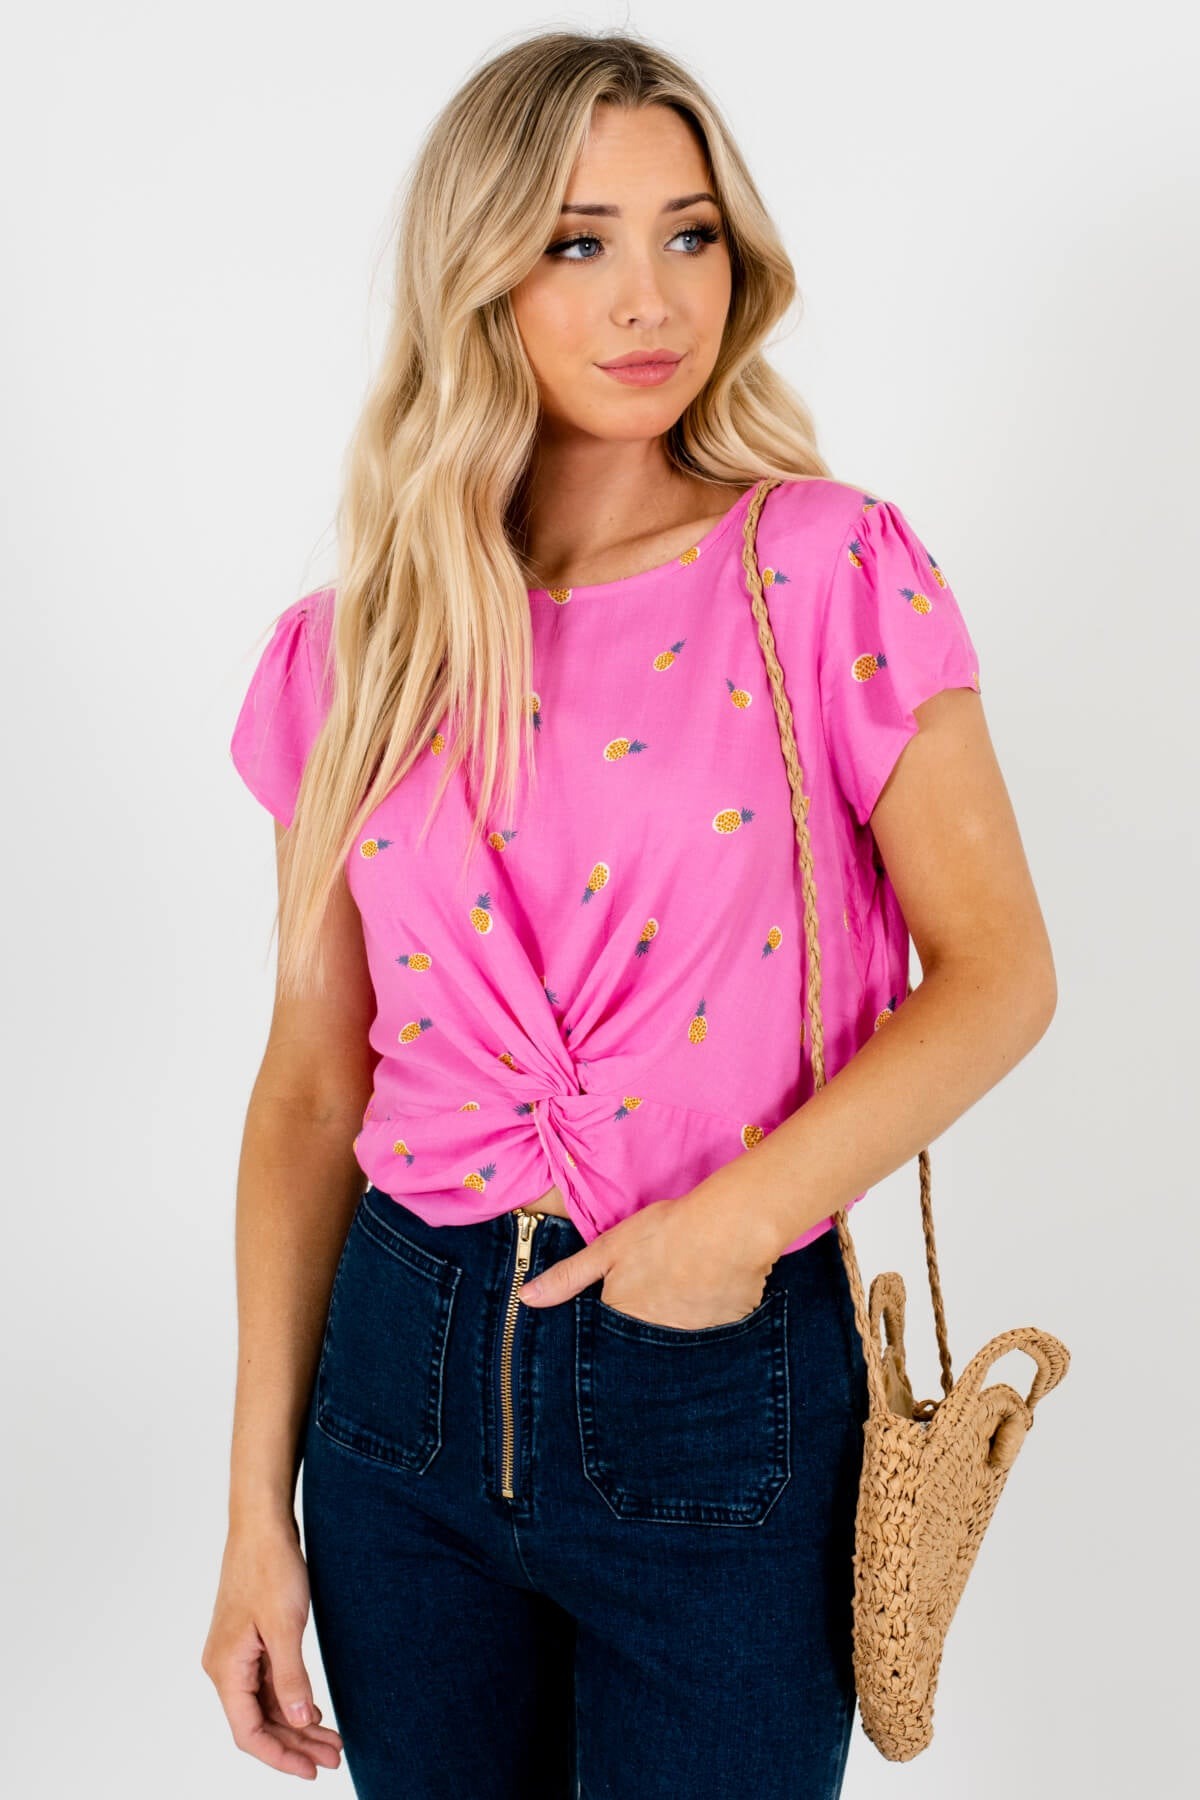 Pink Multicolored Pineapple Patterned Boutique Tops for Women